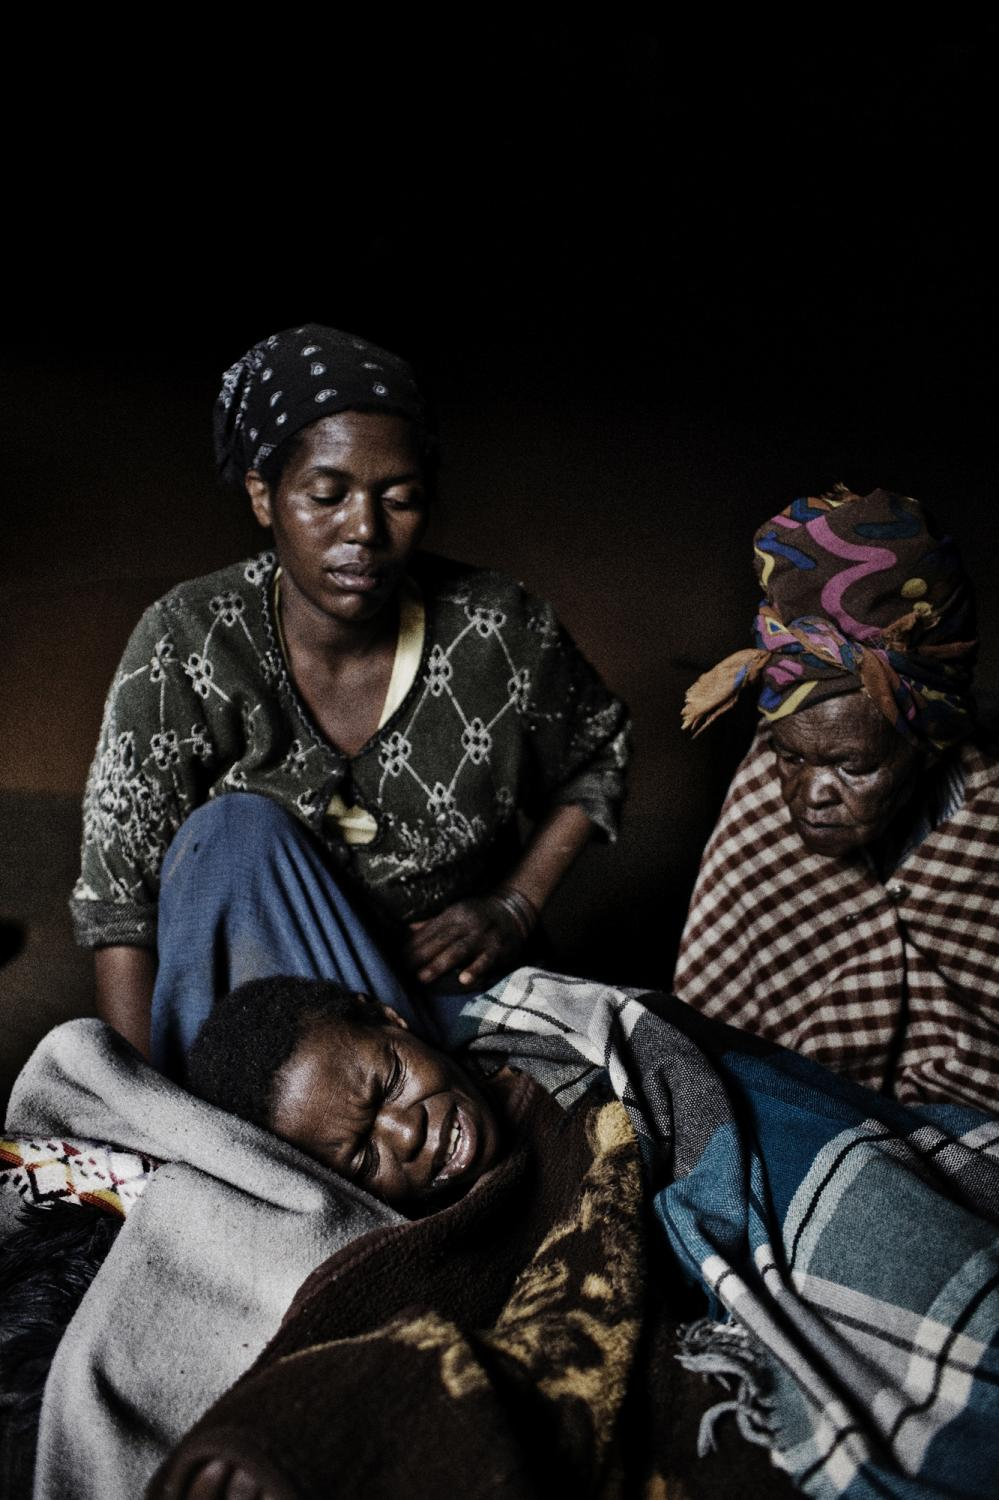 Lesotho. Matseliso Makhaleme is lying on the floor suffering from multi-drug resistant tuberculosis (MDR-TB) and HIV, she is under ART treatment. Here her sister and mother are taking care of her. Lesotho is a mountainous country located entirely within the borders of South Africa. It is home to more than 2 million people and has one of the highest HIV burdens in the world, with between 23 and 30% of the population estimated to be infected with the disease (UNAIDS 2004). Lesotho is also burdened by a high rate of TB, with an incidence of 465 per 100,000 population reported in 2005 (10,363 cases), making it the country with the fourth highest incidence in the world. Lesotho is likely in the midst of a public health disaster, where a drug-resistant TB epidemic and HIV epidemic are colliding, one fueling the other. An estimated 950 new MDR-TB patients will be diagnosed every year in Lesotho.